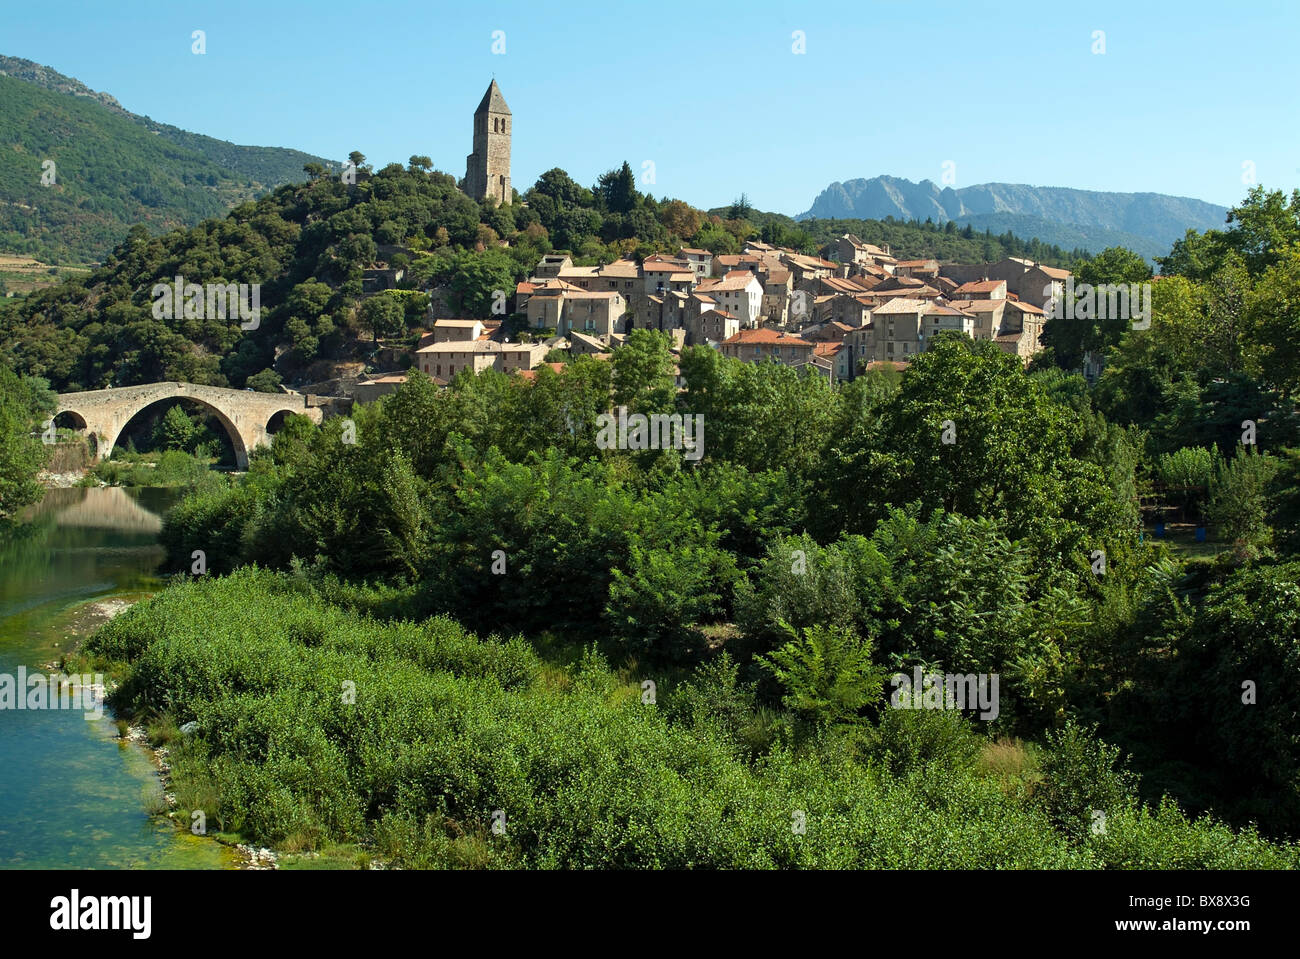 Medieval village settled along the Orb river, Olargues, Herault, France. - Stock Image